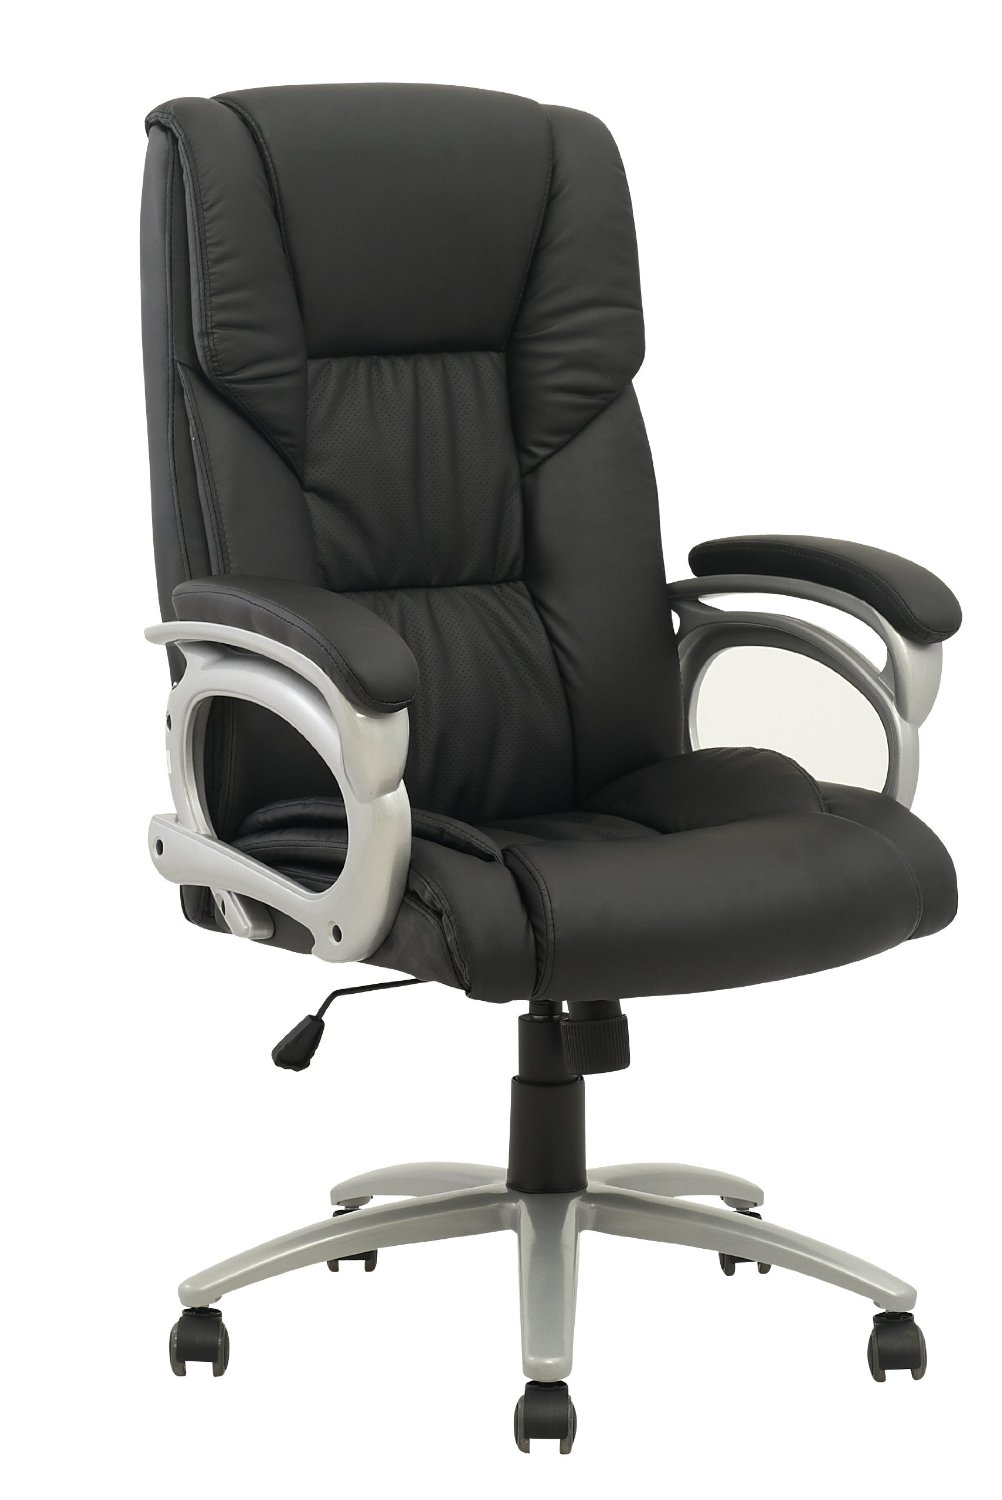 Best budget office chairs for your healthy and comfy for Best chair for working at home